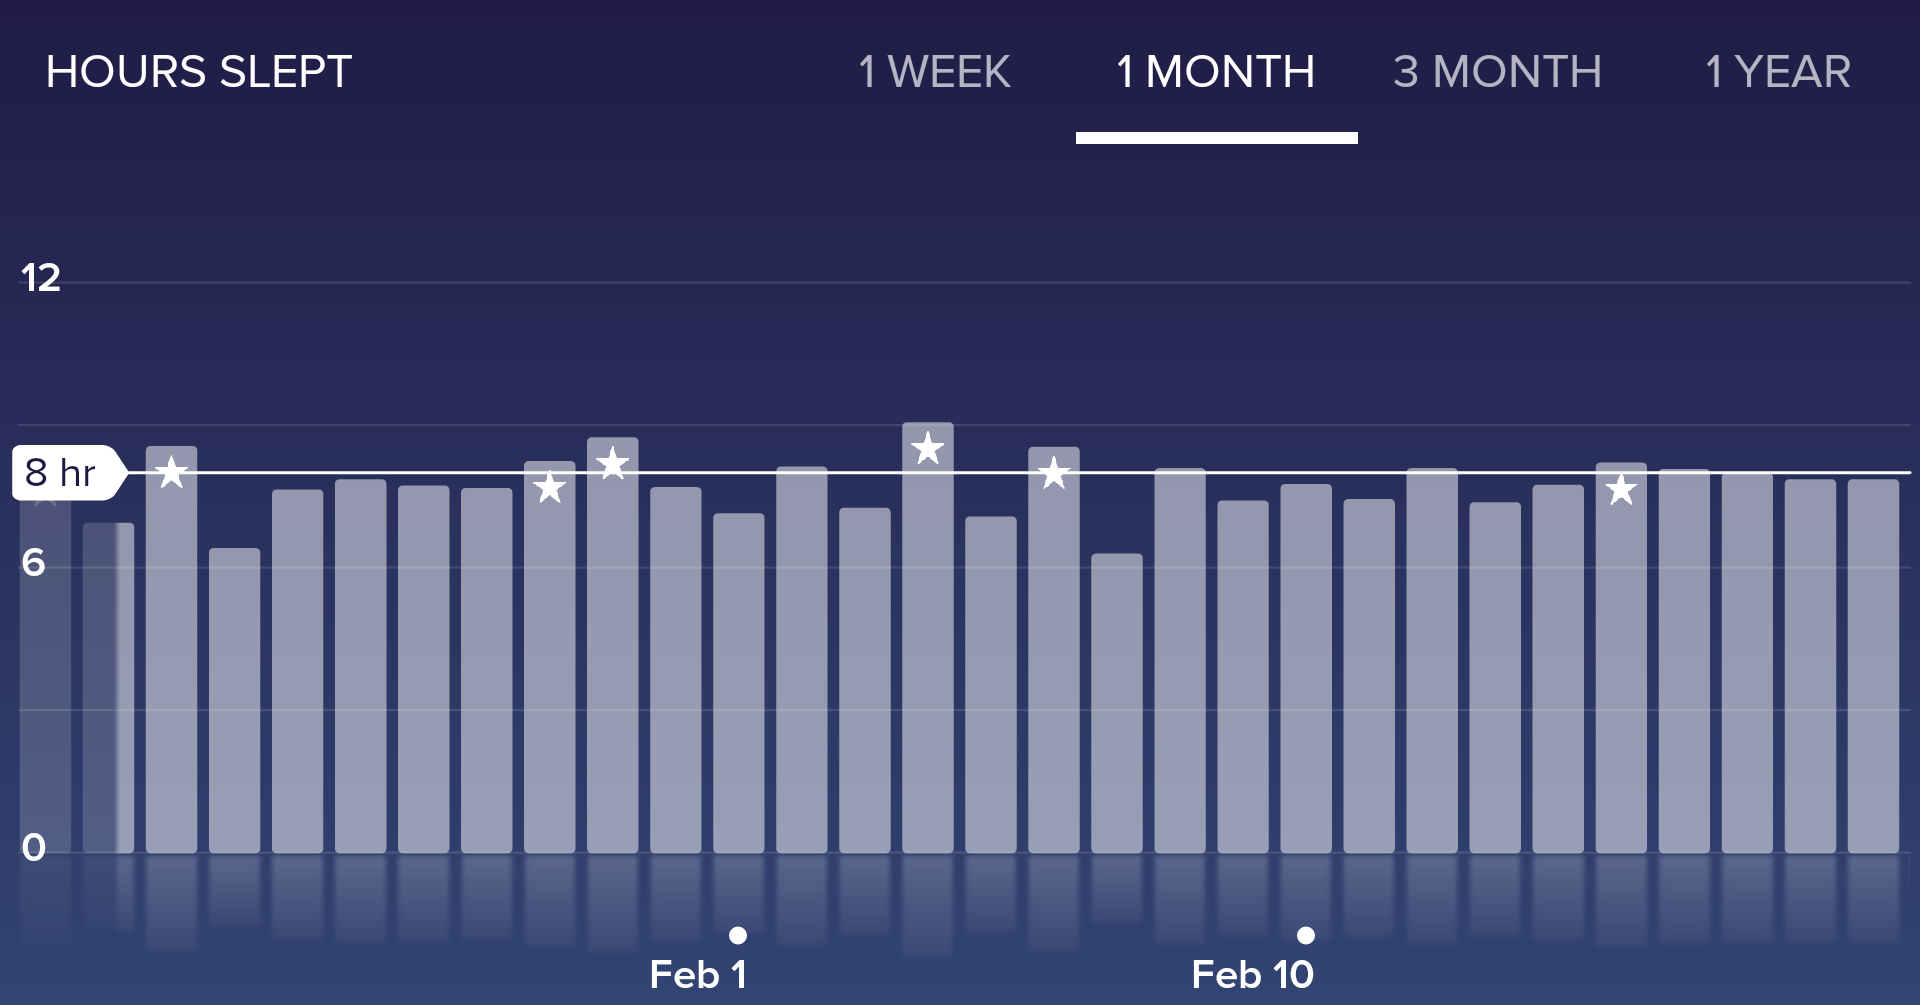 sleep_month